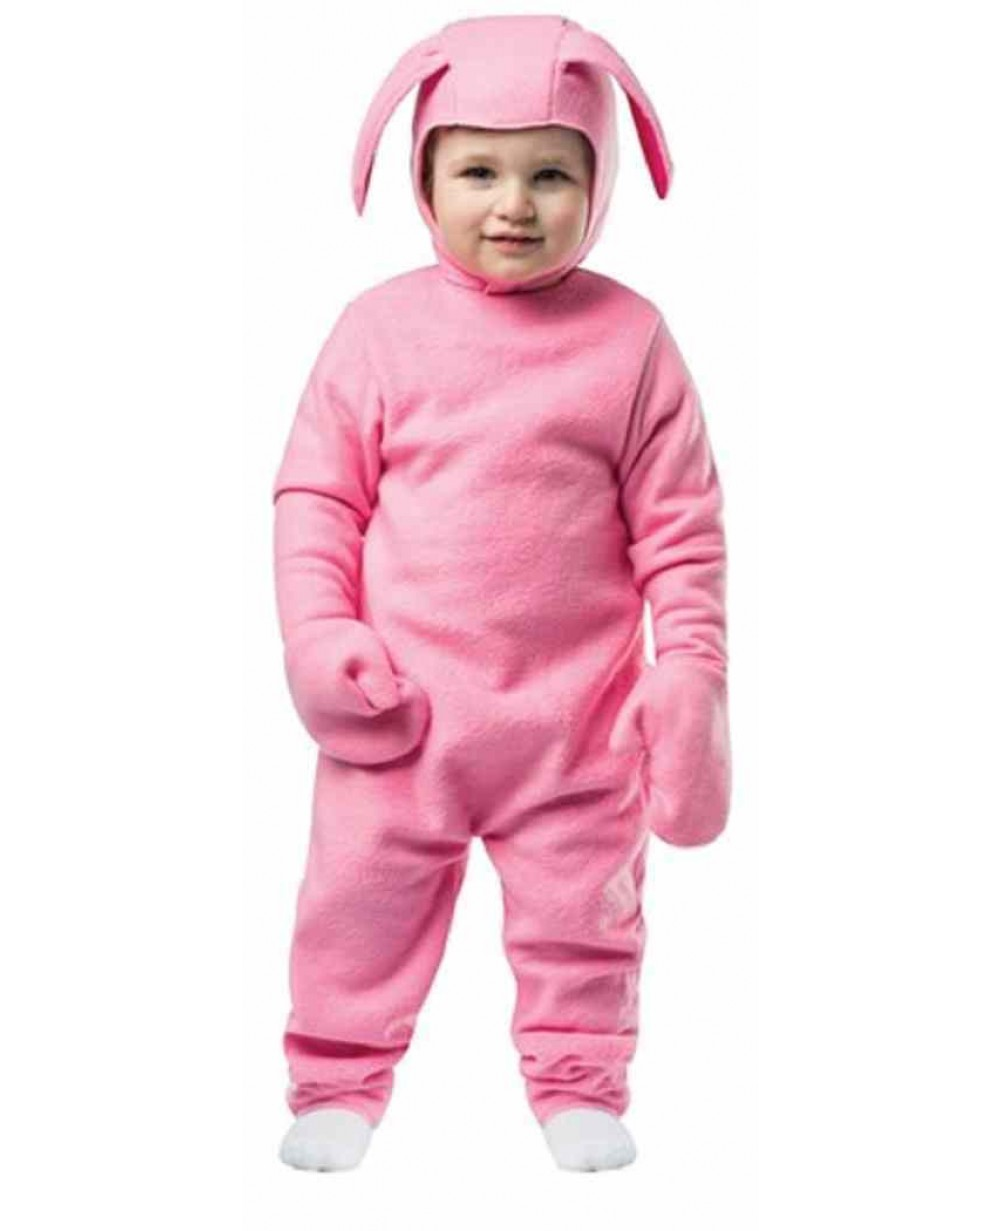 A Christmas Story Ralphie's Toddler Bunny Suit Costum